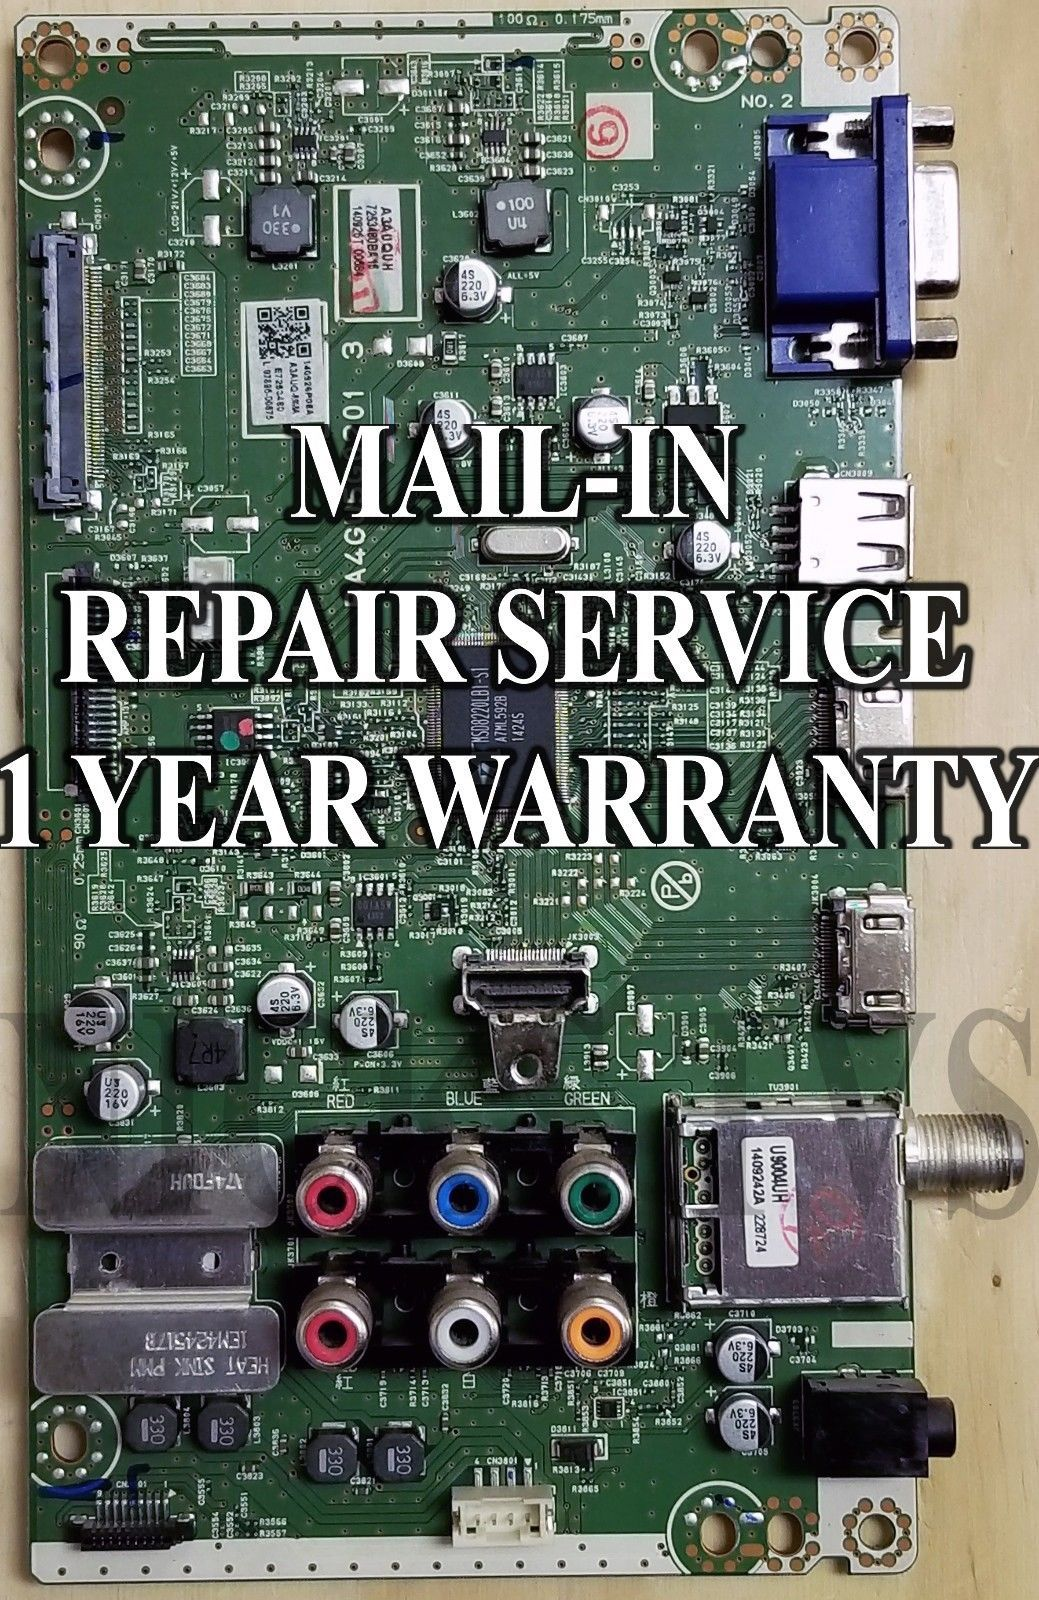 Mail-in Repair Service for LG 60PN5000 Main Board 1 YEAR WARRANTY